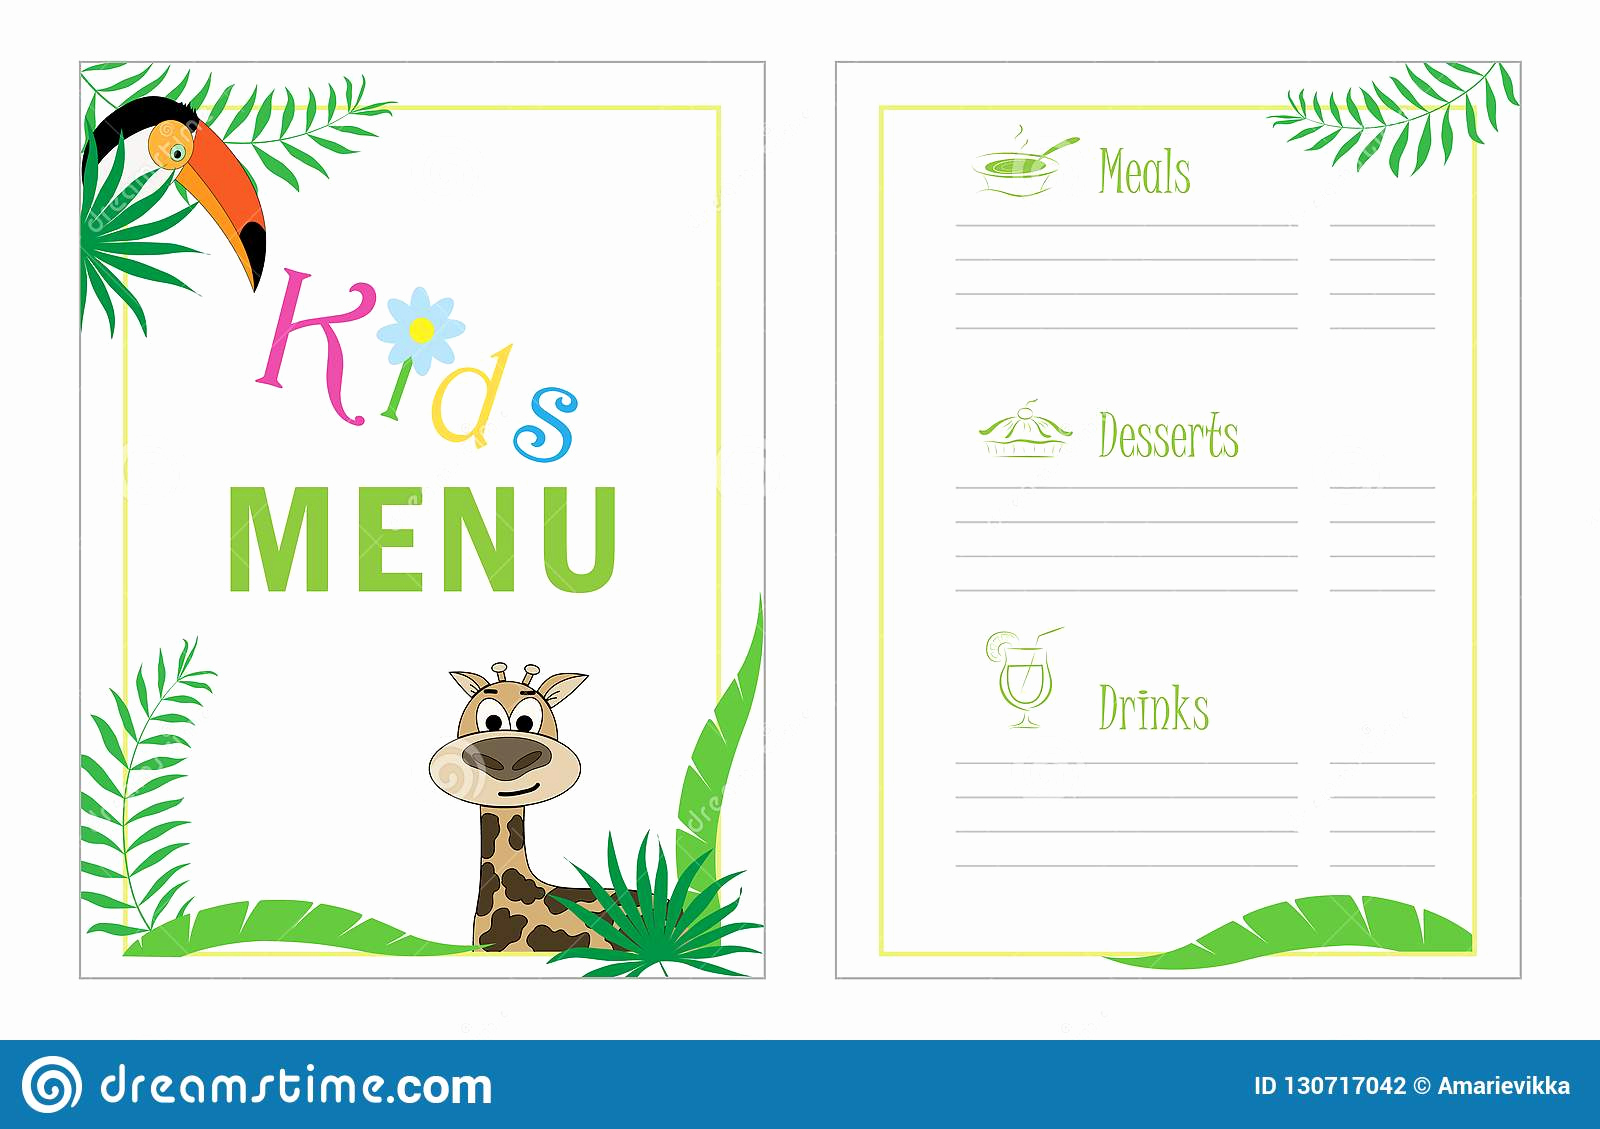 Free Kids Menu Template Luxury Childrens Menu Template Cafe Menu Design for Kids Kid